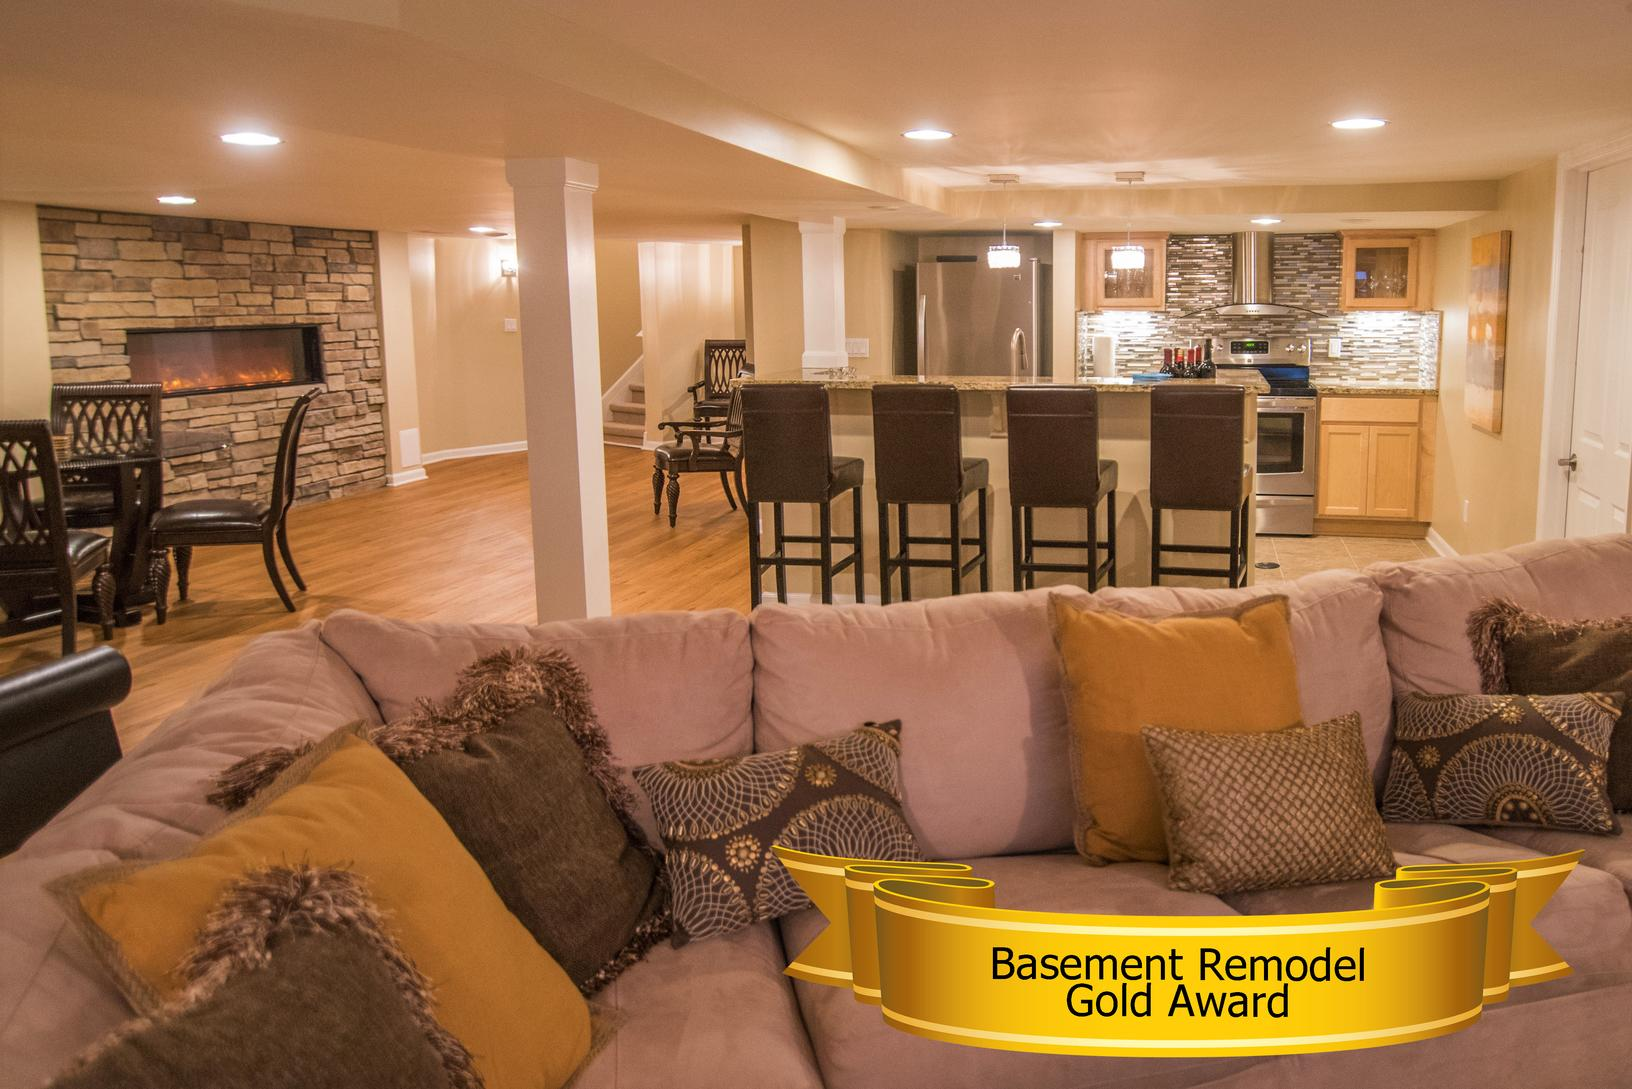 home builders association of south eastern michigan gold award for basement remodel finished basements plus 2016